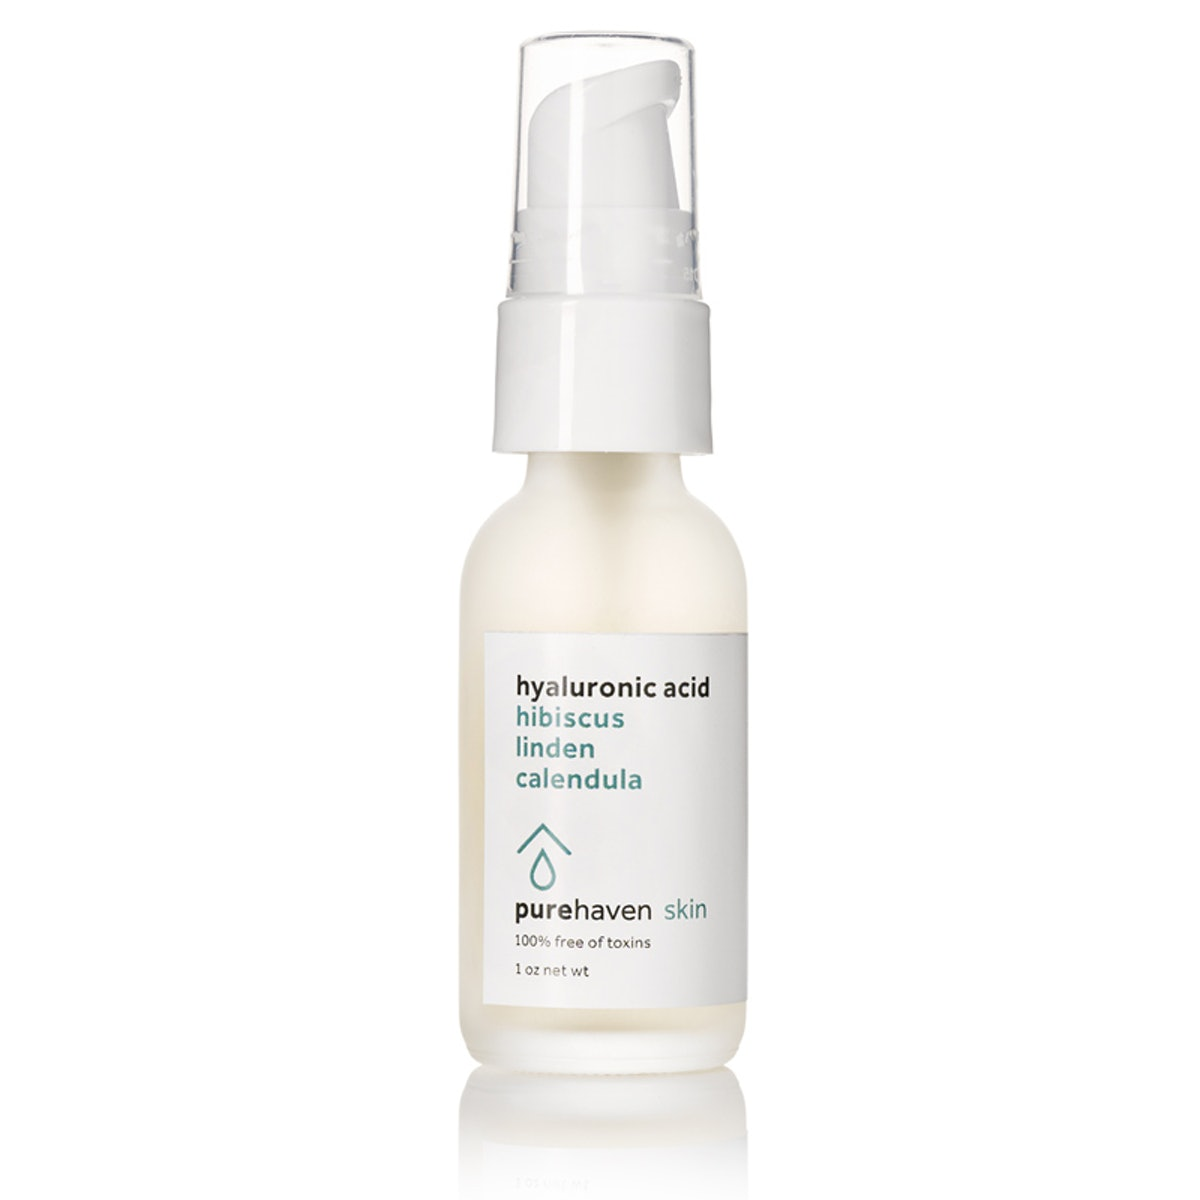 Pure Haven Hyaluronic Acid